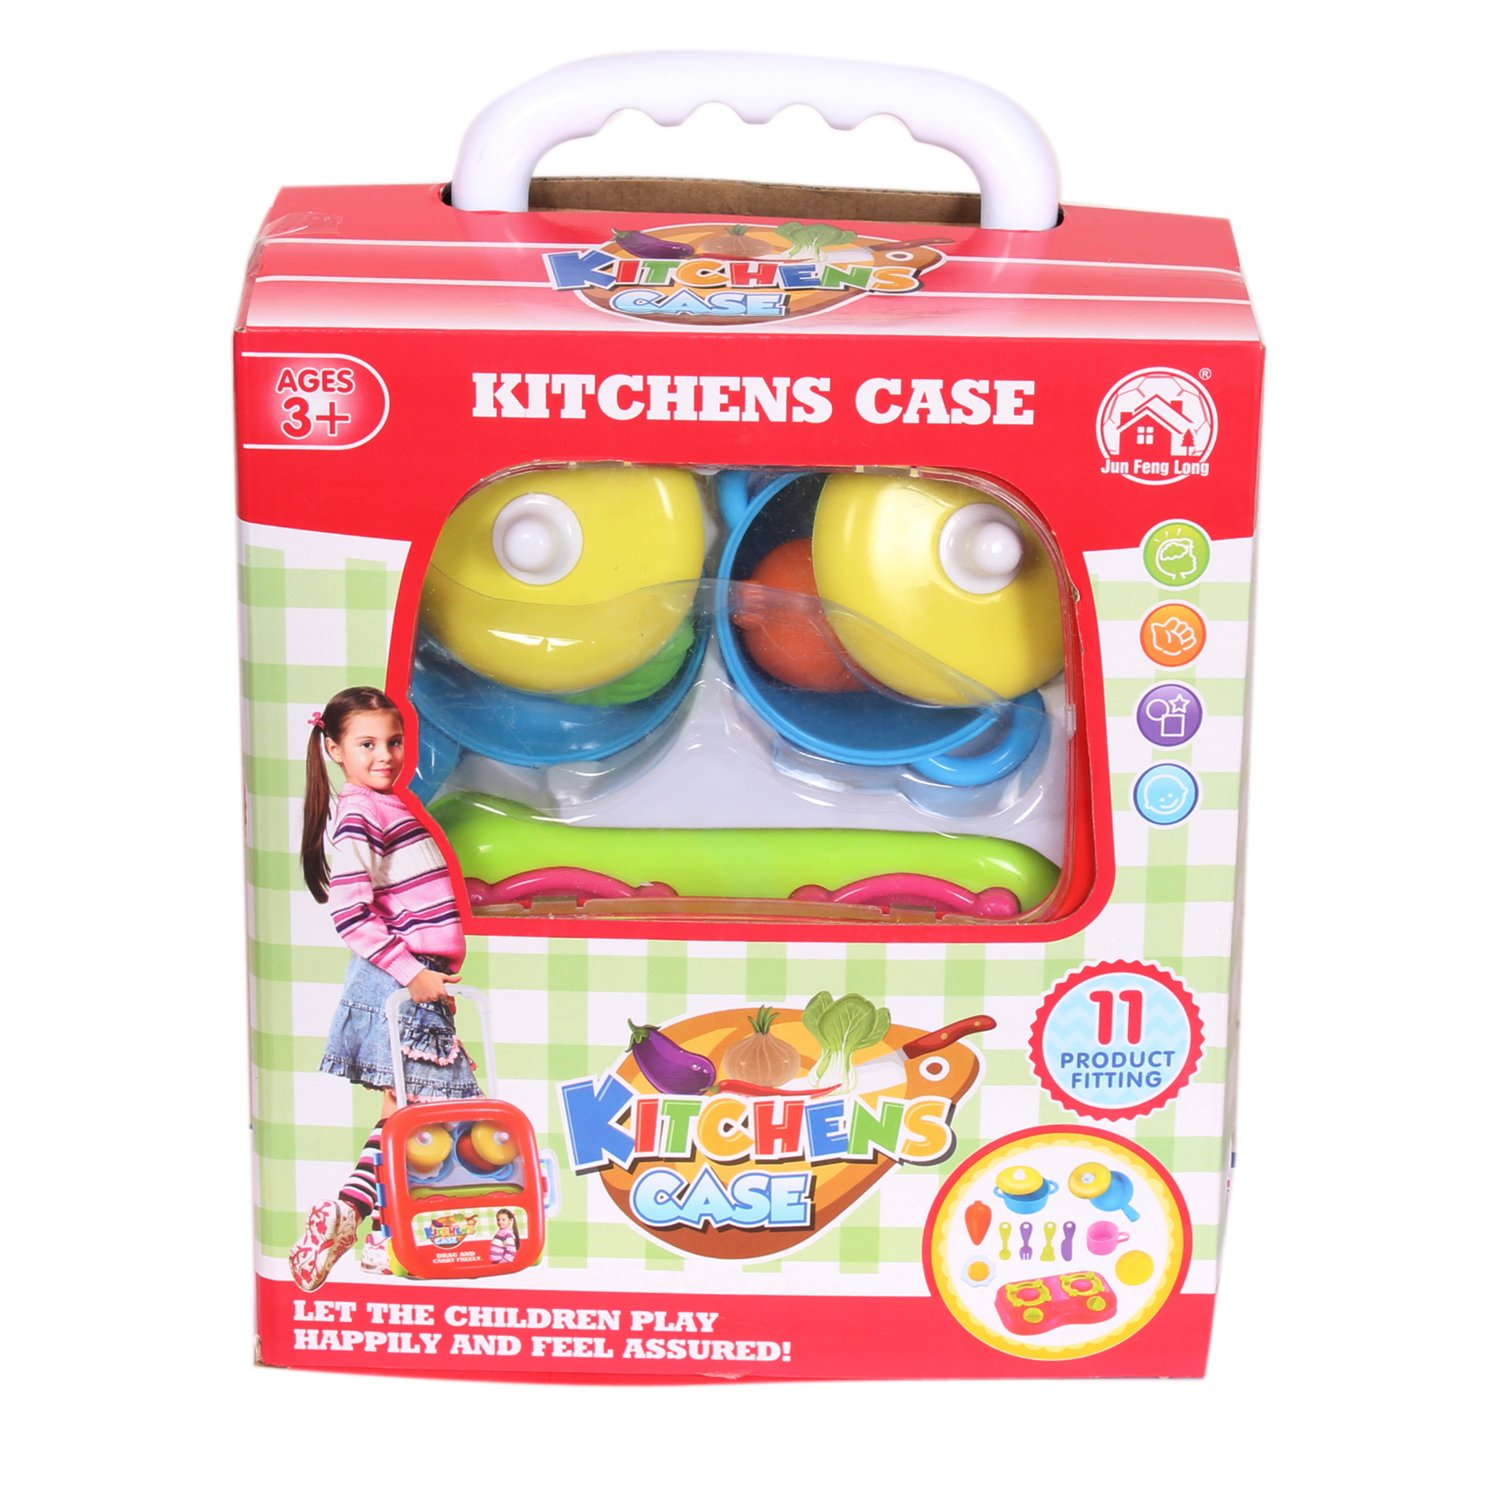 Buy Smartcraft Kitchen Set Trolley Case Pretend Play Charger Fenglong For Kids Cooking Role Kit Children Online At Low Prices In India